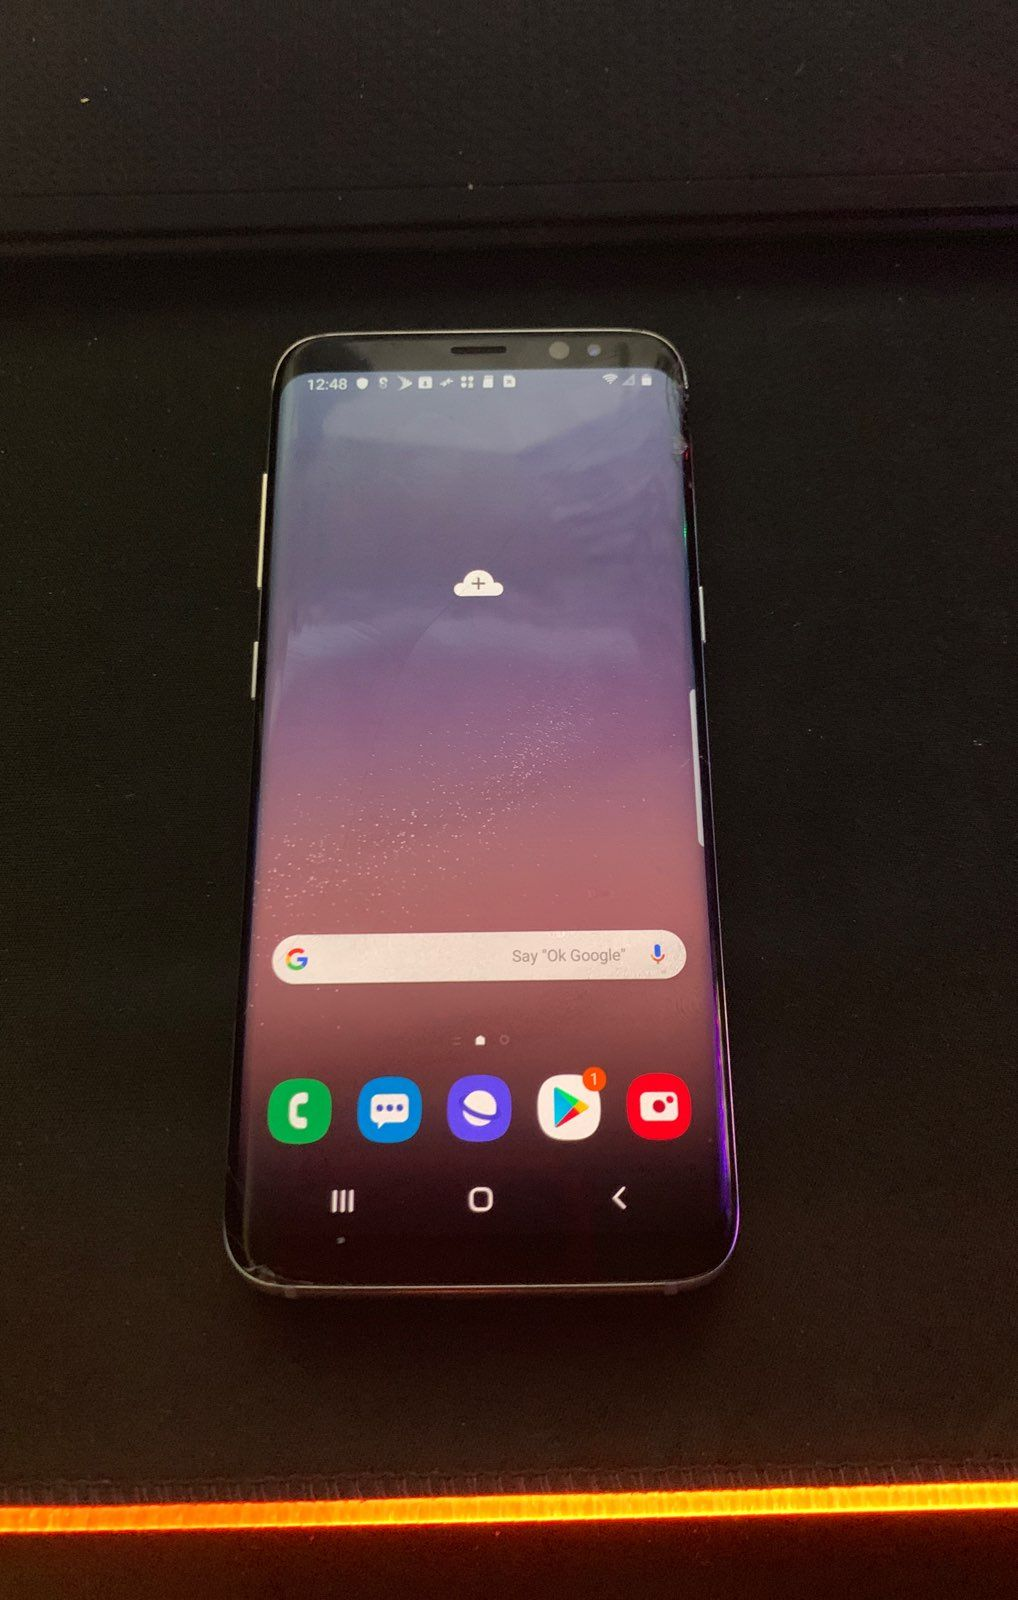 This is a Samsung galaxy s8 that has a bad esn and it's cracked on